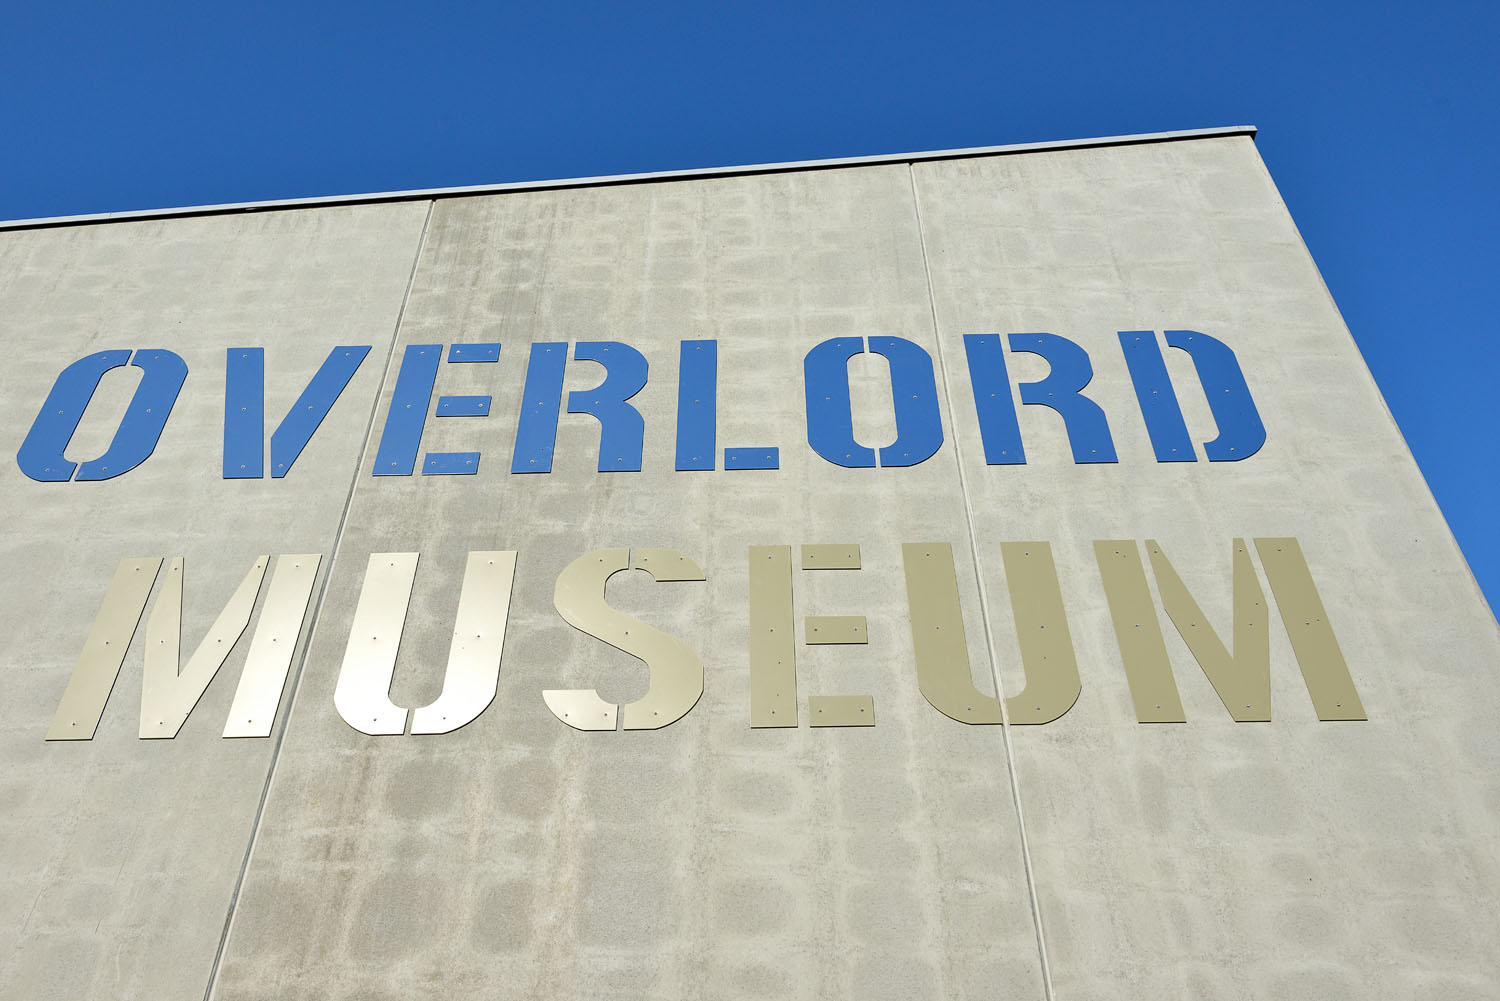 Overlord Museum - Colleville-sur-Mer - Août 2013 - 130